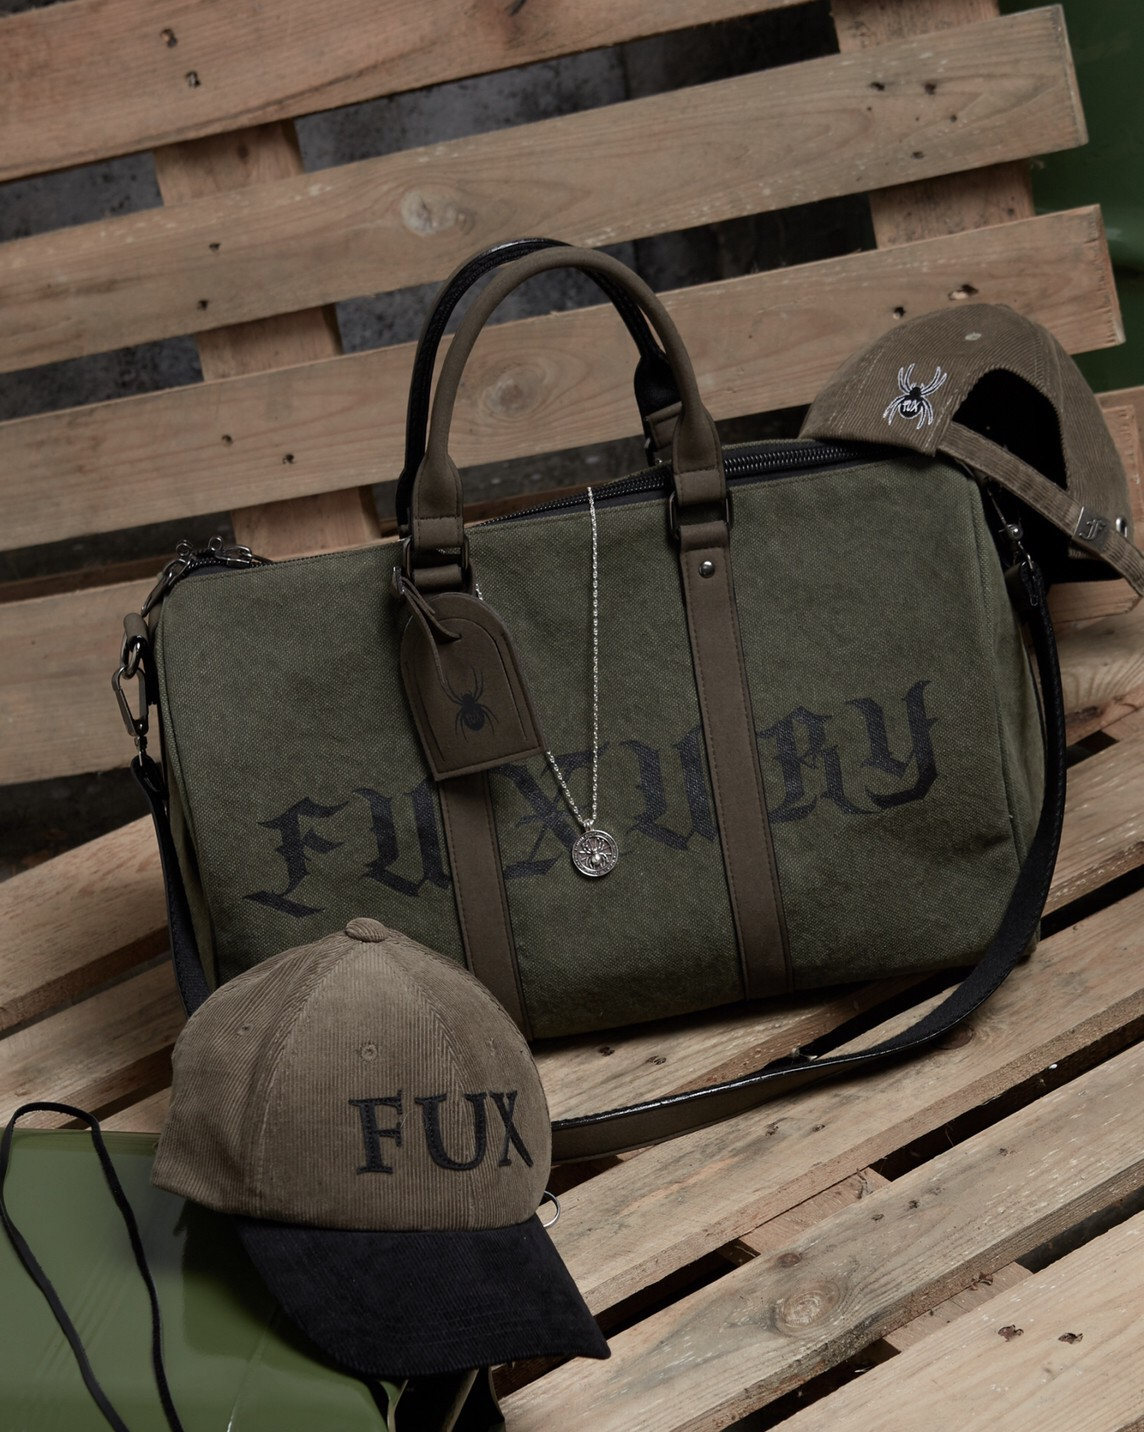 FUXURY BIG SAD DUFFLE BAG